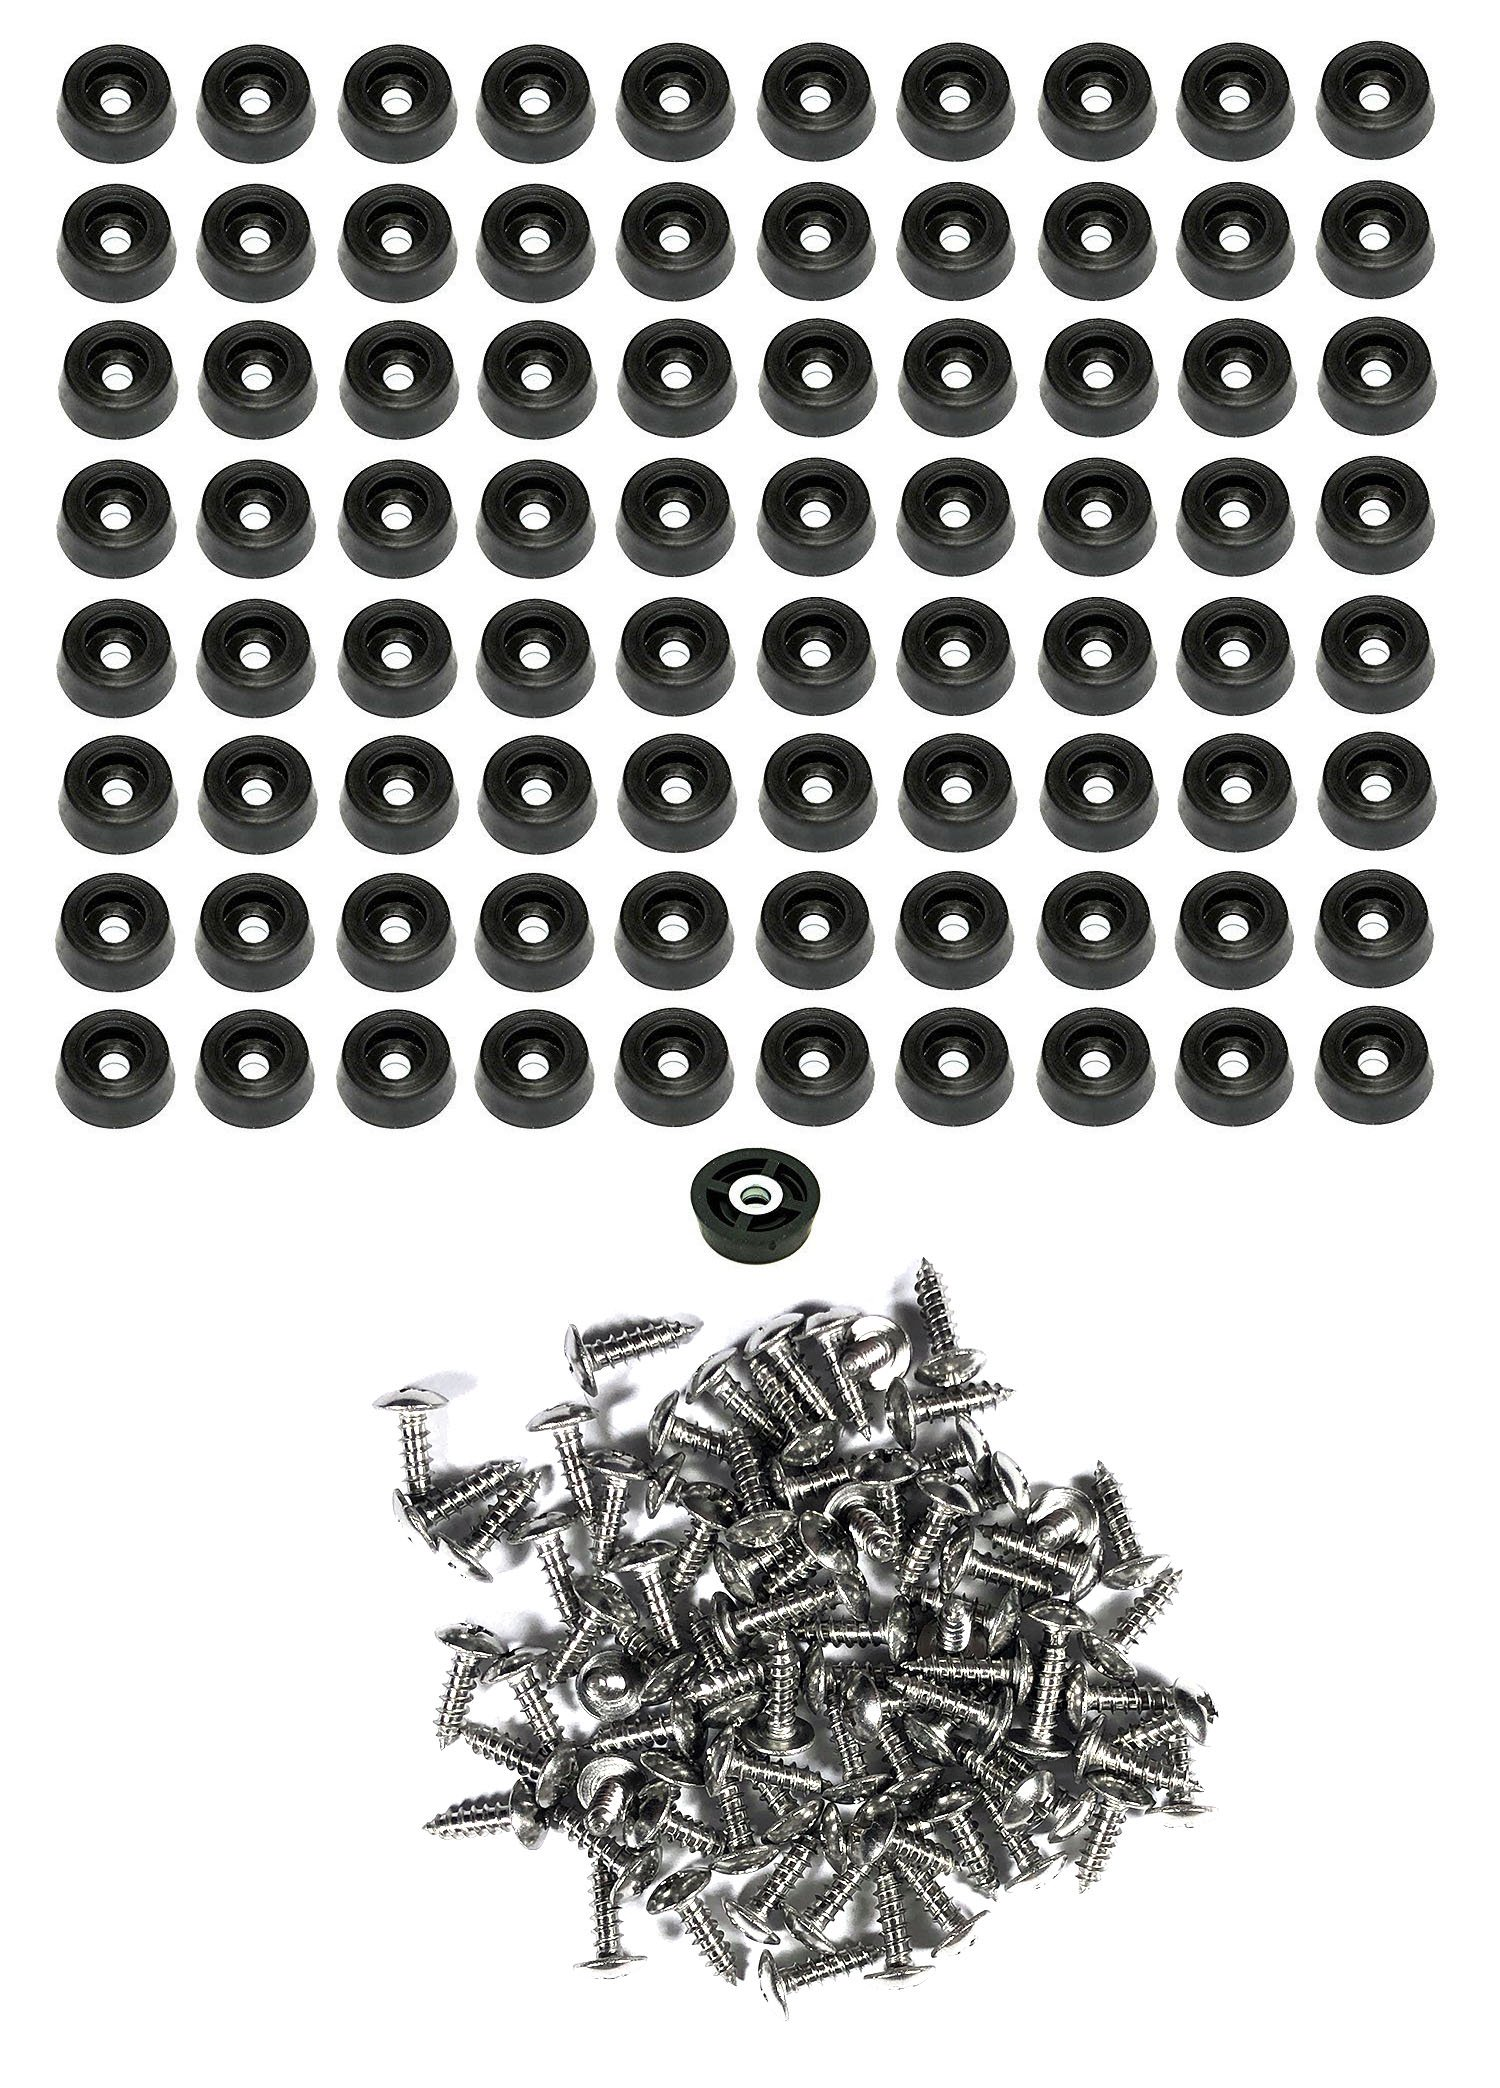 80 Small Round Rubber Feet W/Screws - .250 H X .671 D - Made in USA - Cutting Boards - Food Safe